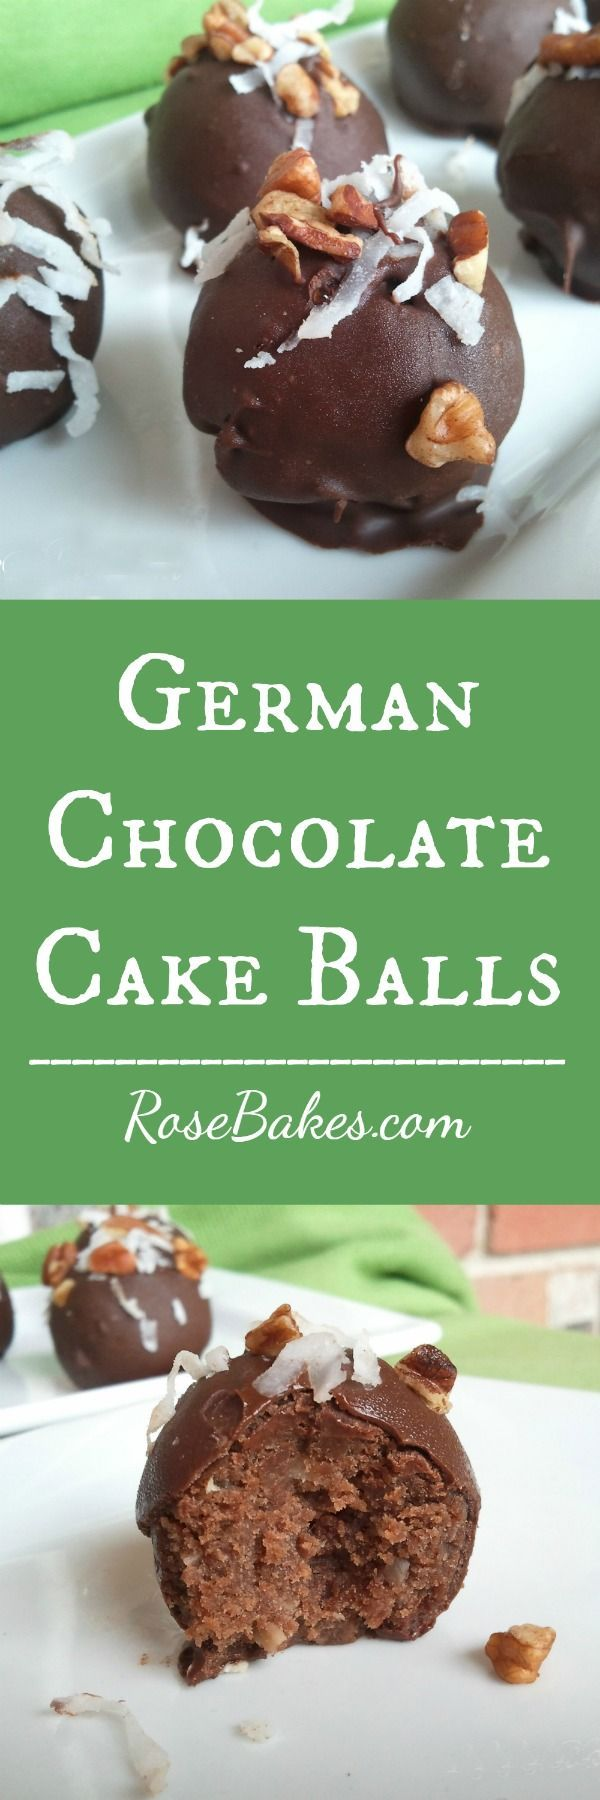 German Chocolate Cake Balls | RoseBakes.com